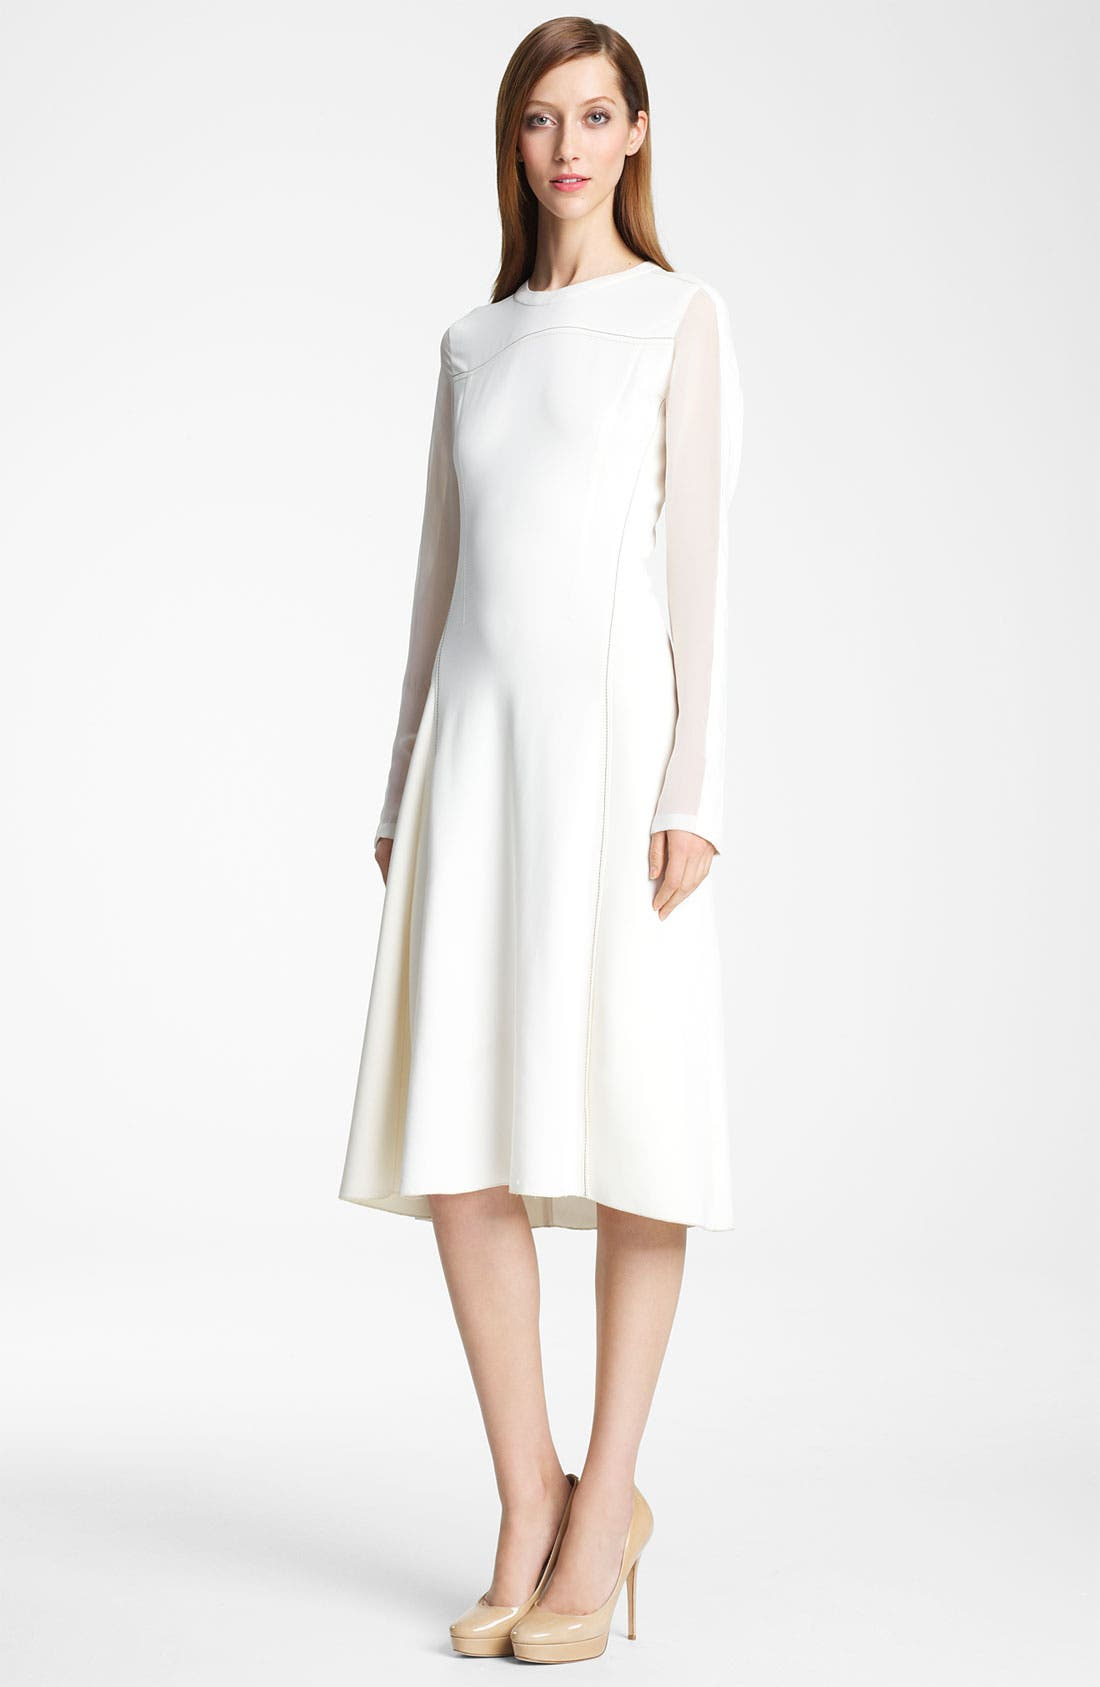 Alternate Image 1 Selected - Reed Krakoff Contrast Stitch Dress